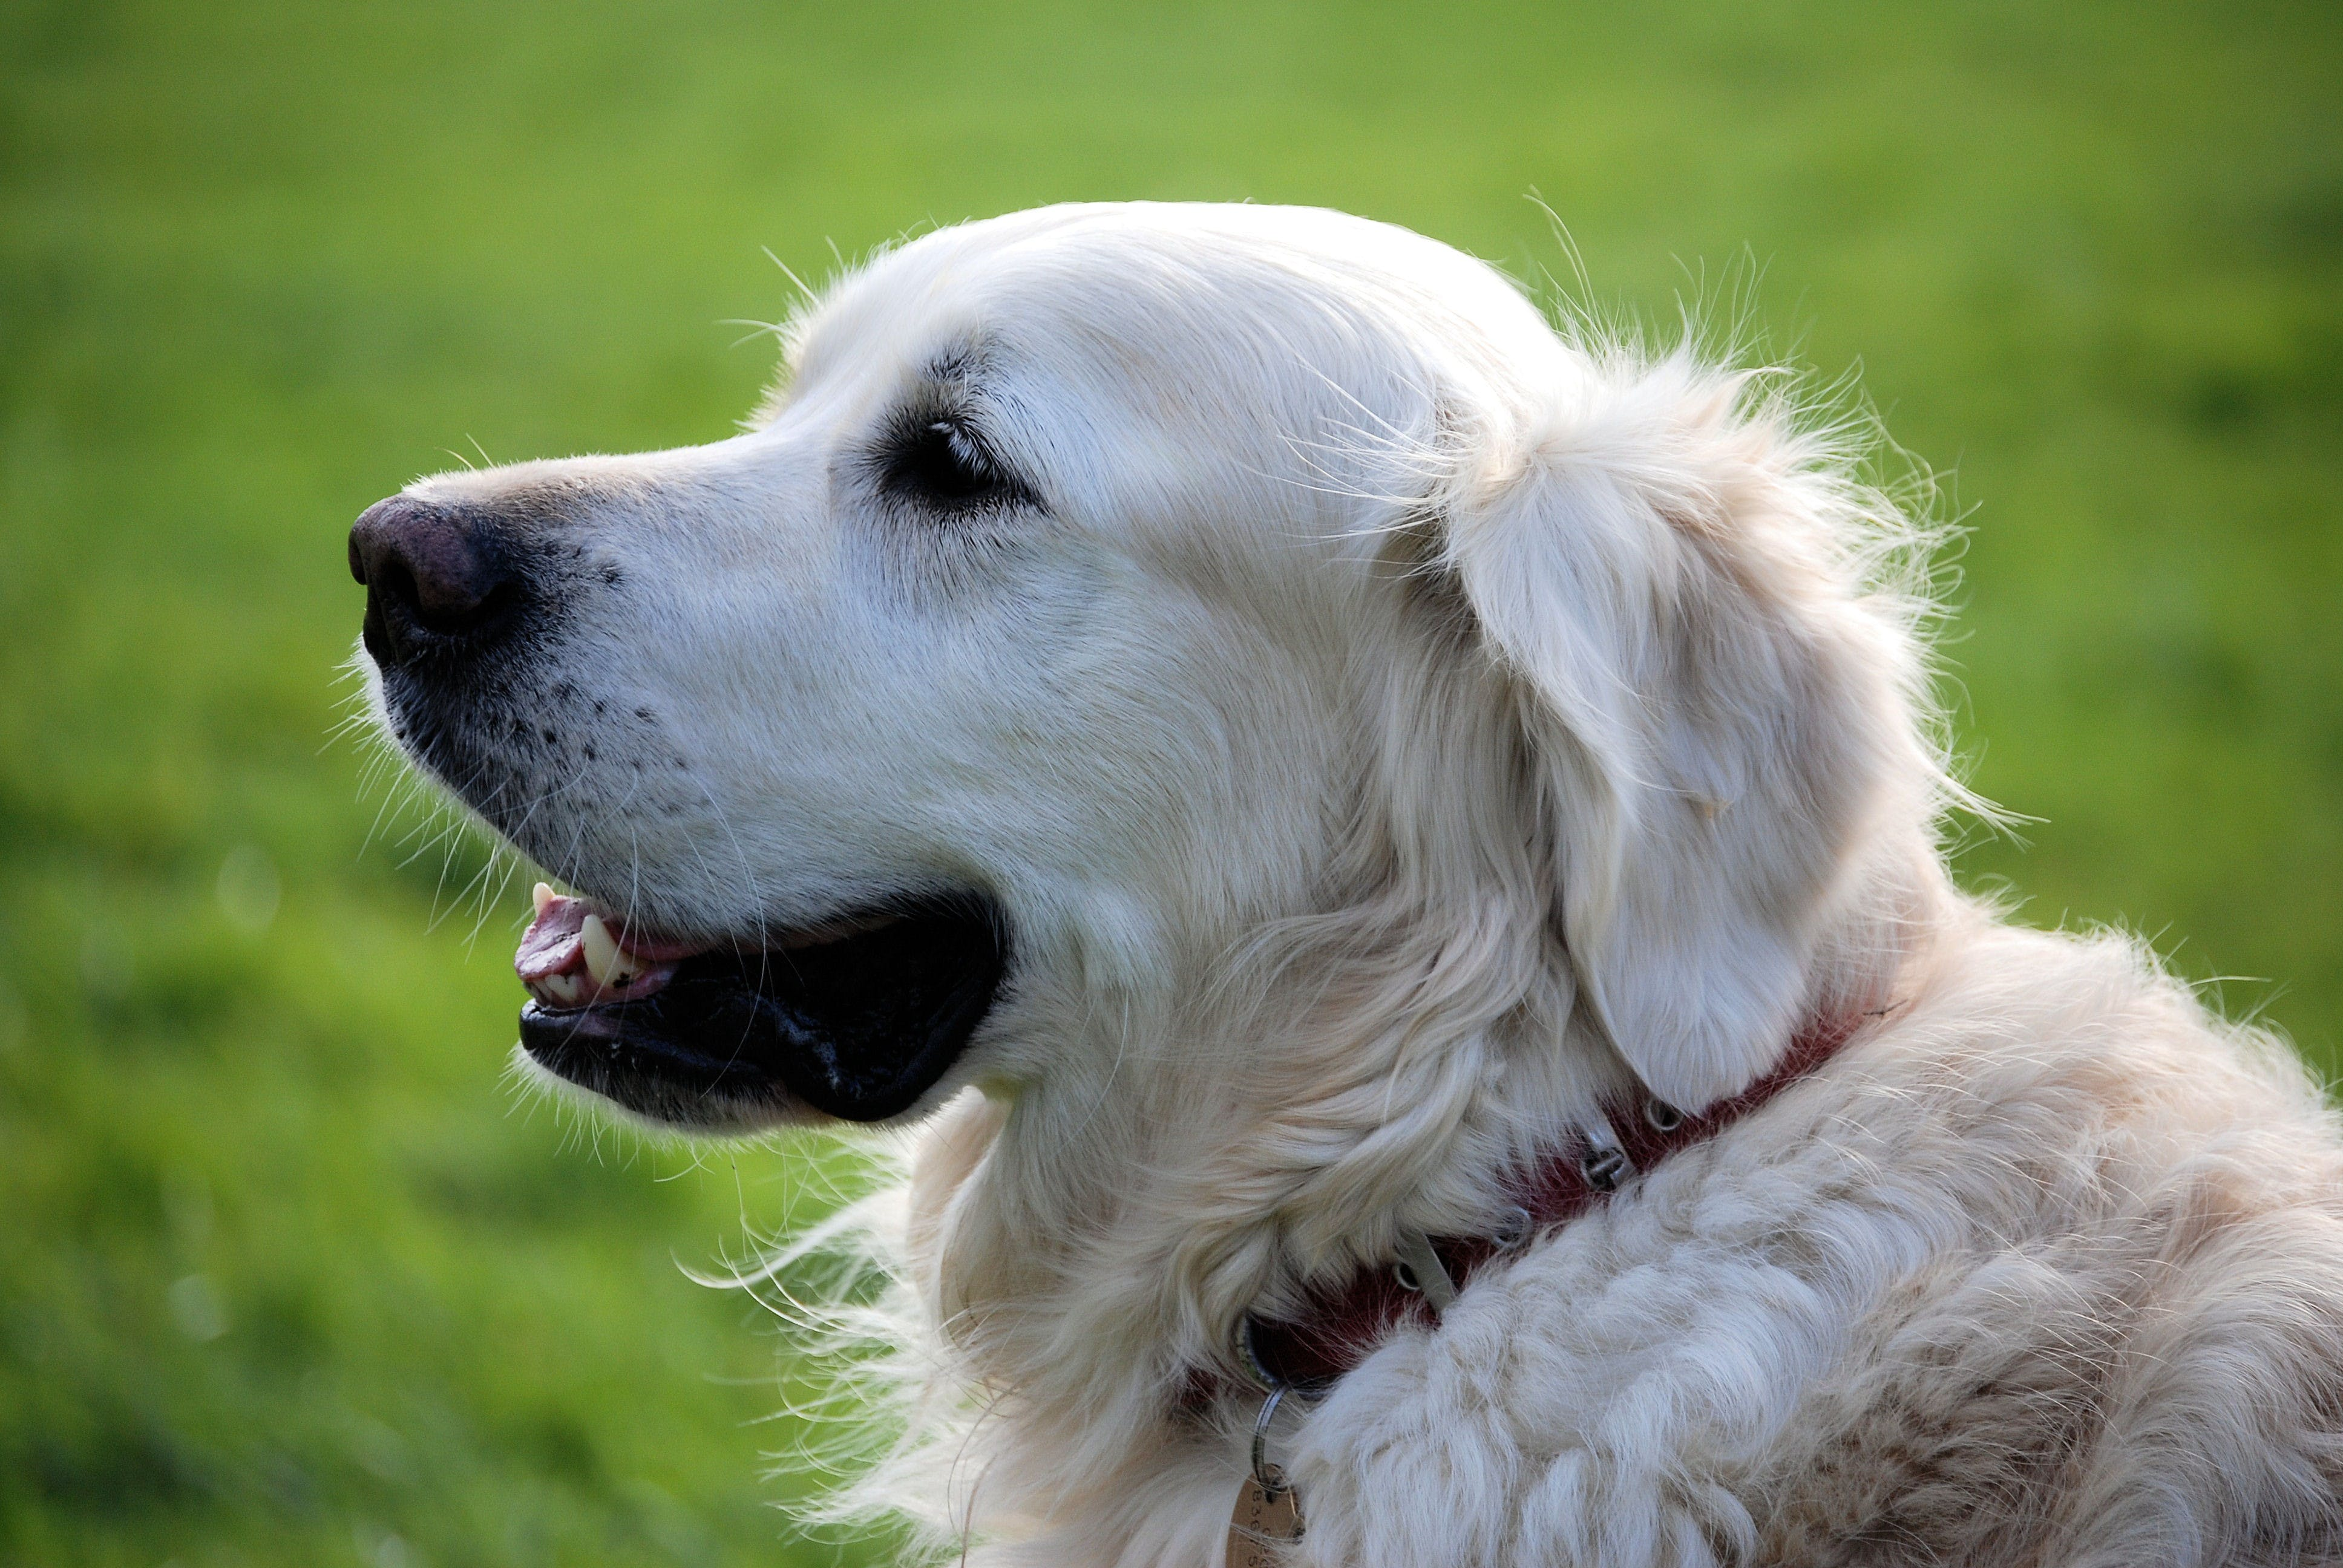 Golden Retriever Dog Wearing Red Collar